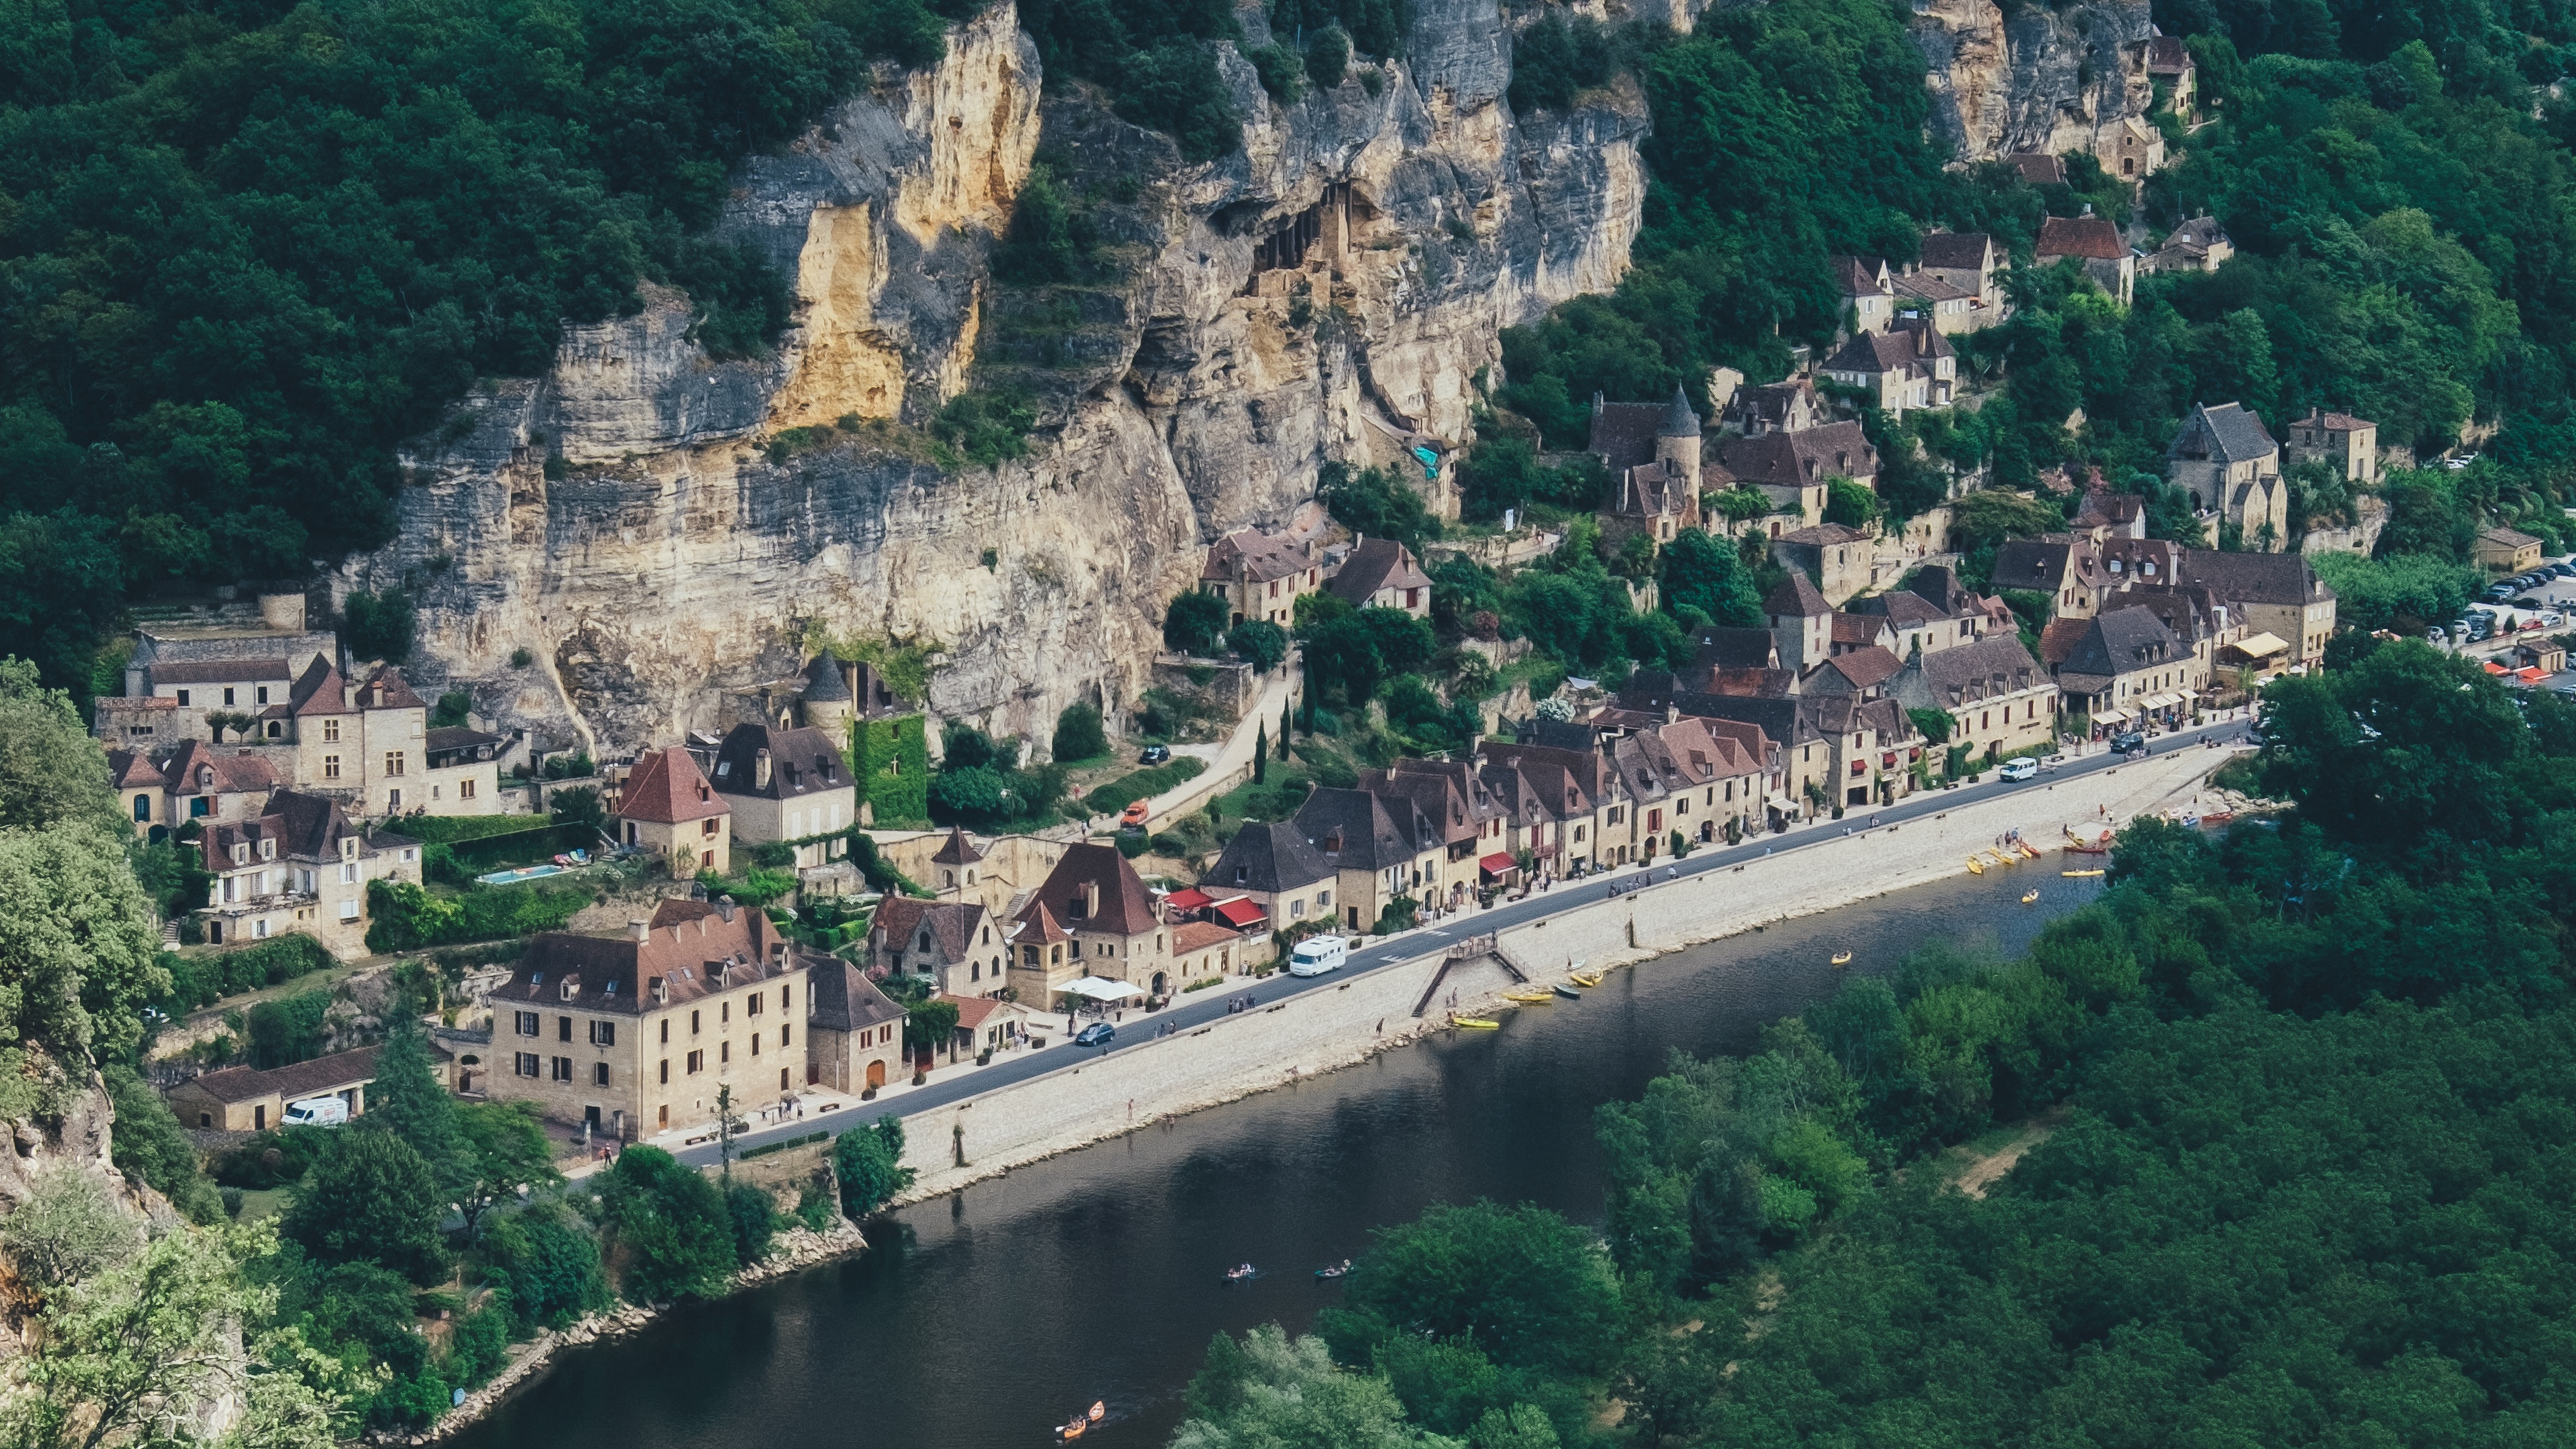 mountains river rock countryside canoes dordogne france 4k 1538065529 - mountains, river, rock, countryside, canoes, dordogne, france 4k - Rock, River, Mountains